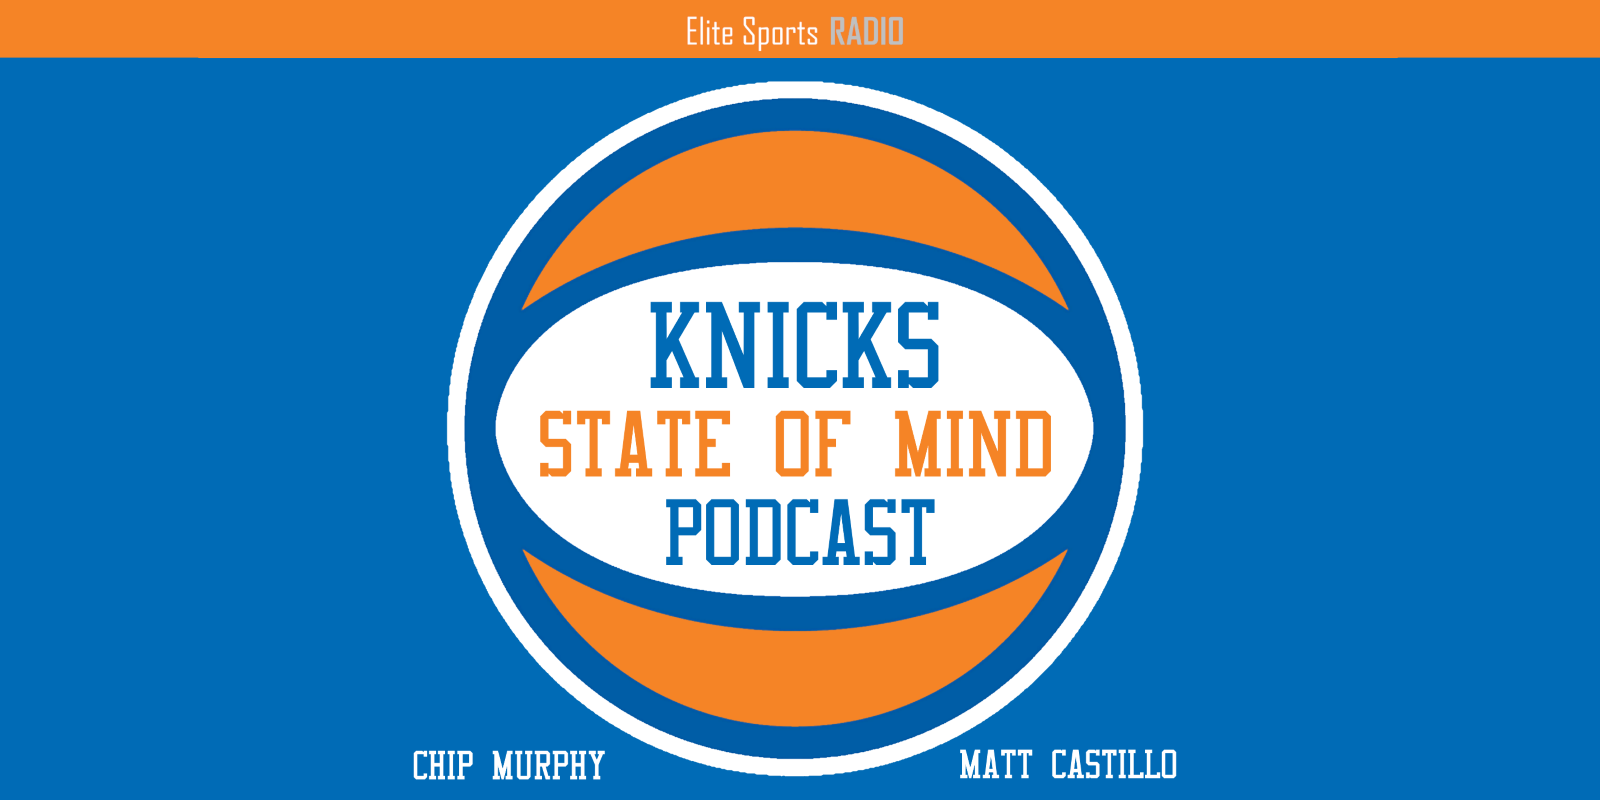 Knicks State of Mind Podcast: Melo Ranked 64th, Marbury Comeback, Ultimate Team (Audio)